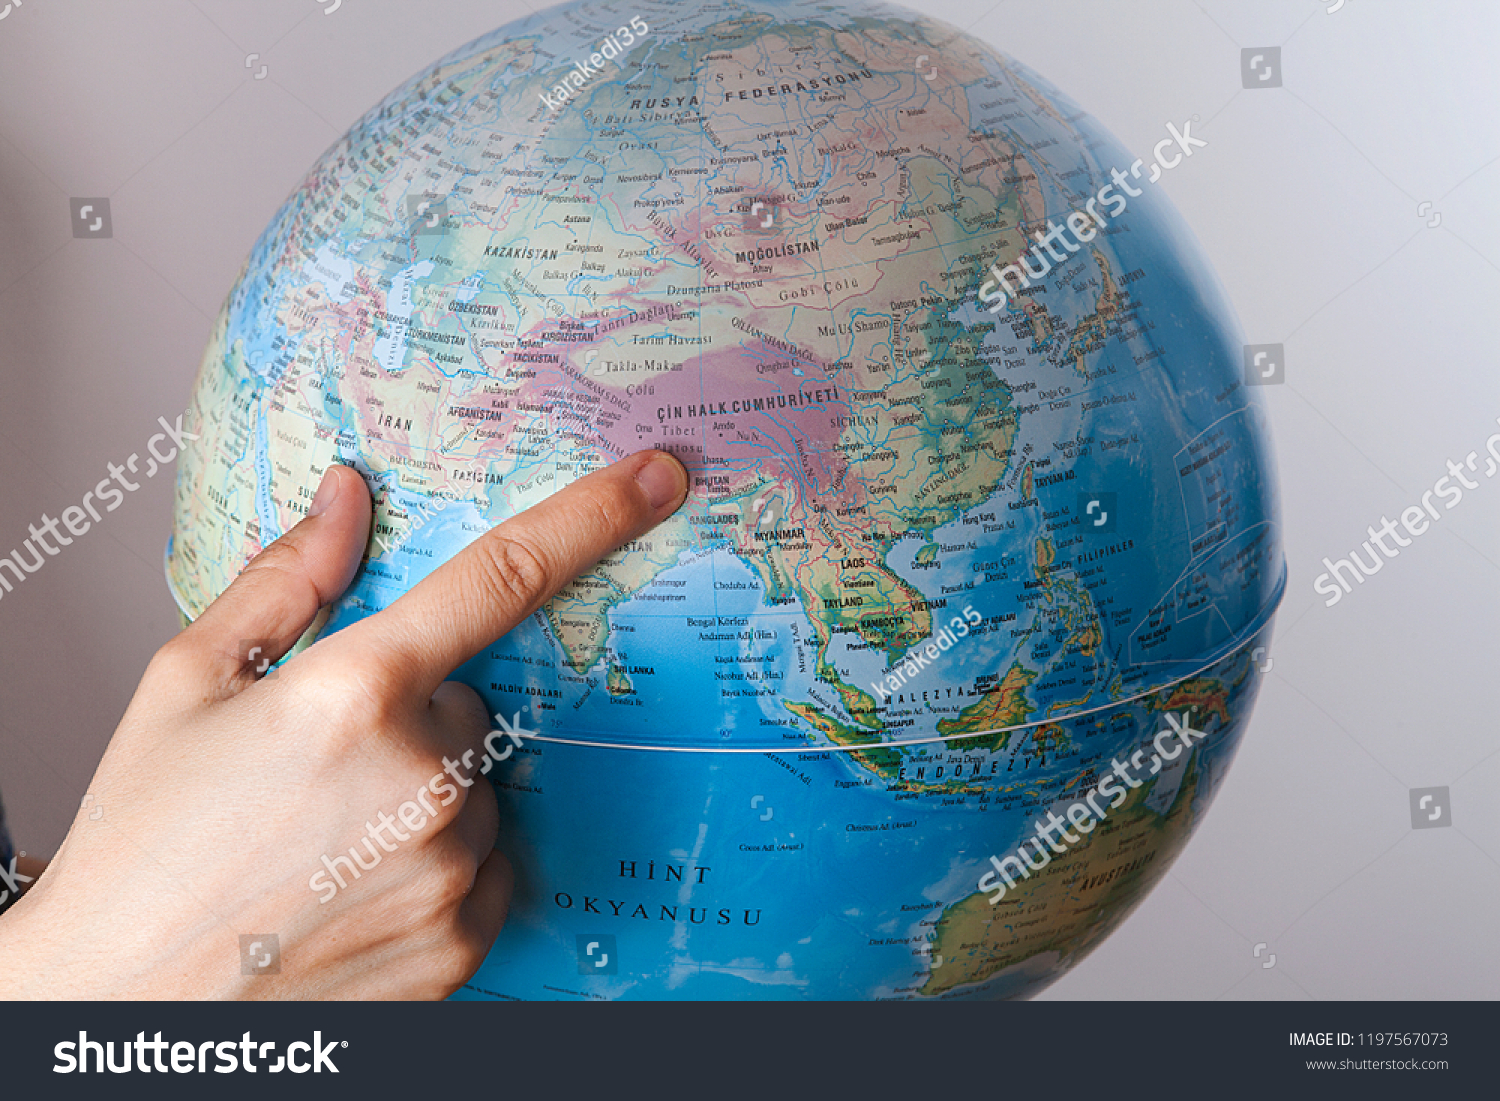 World Map On Hands.Woman Holding World Map Hands Stock Photo Edit Now 1197567073